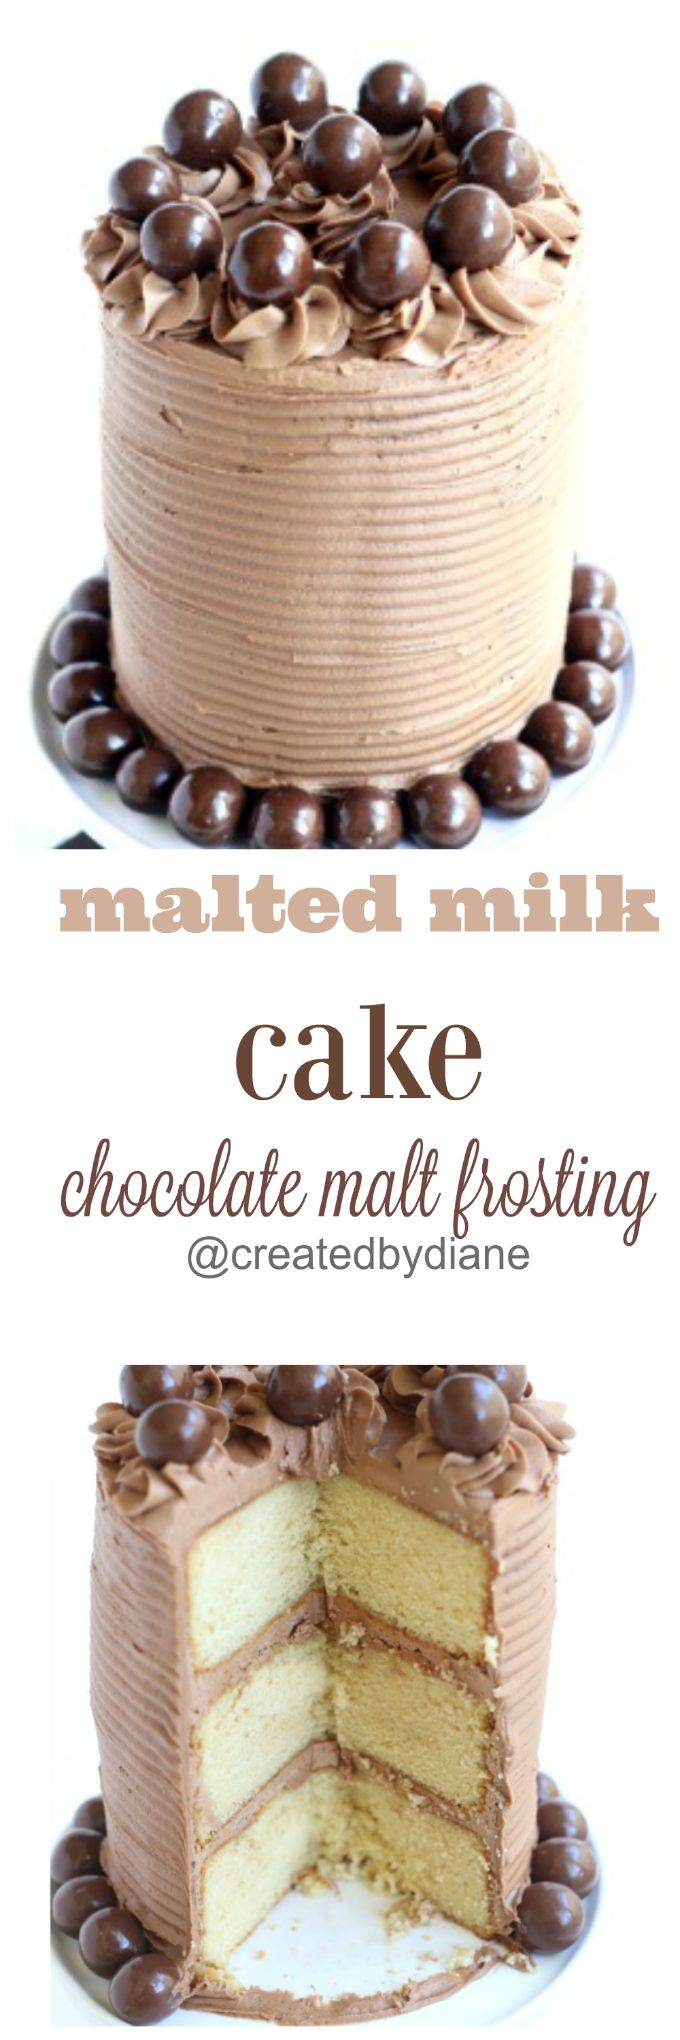 Malted milk cake topped with Chocolate Malt Frosting, this cake is moist and delicious and will soon be a favorite for everyone.